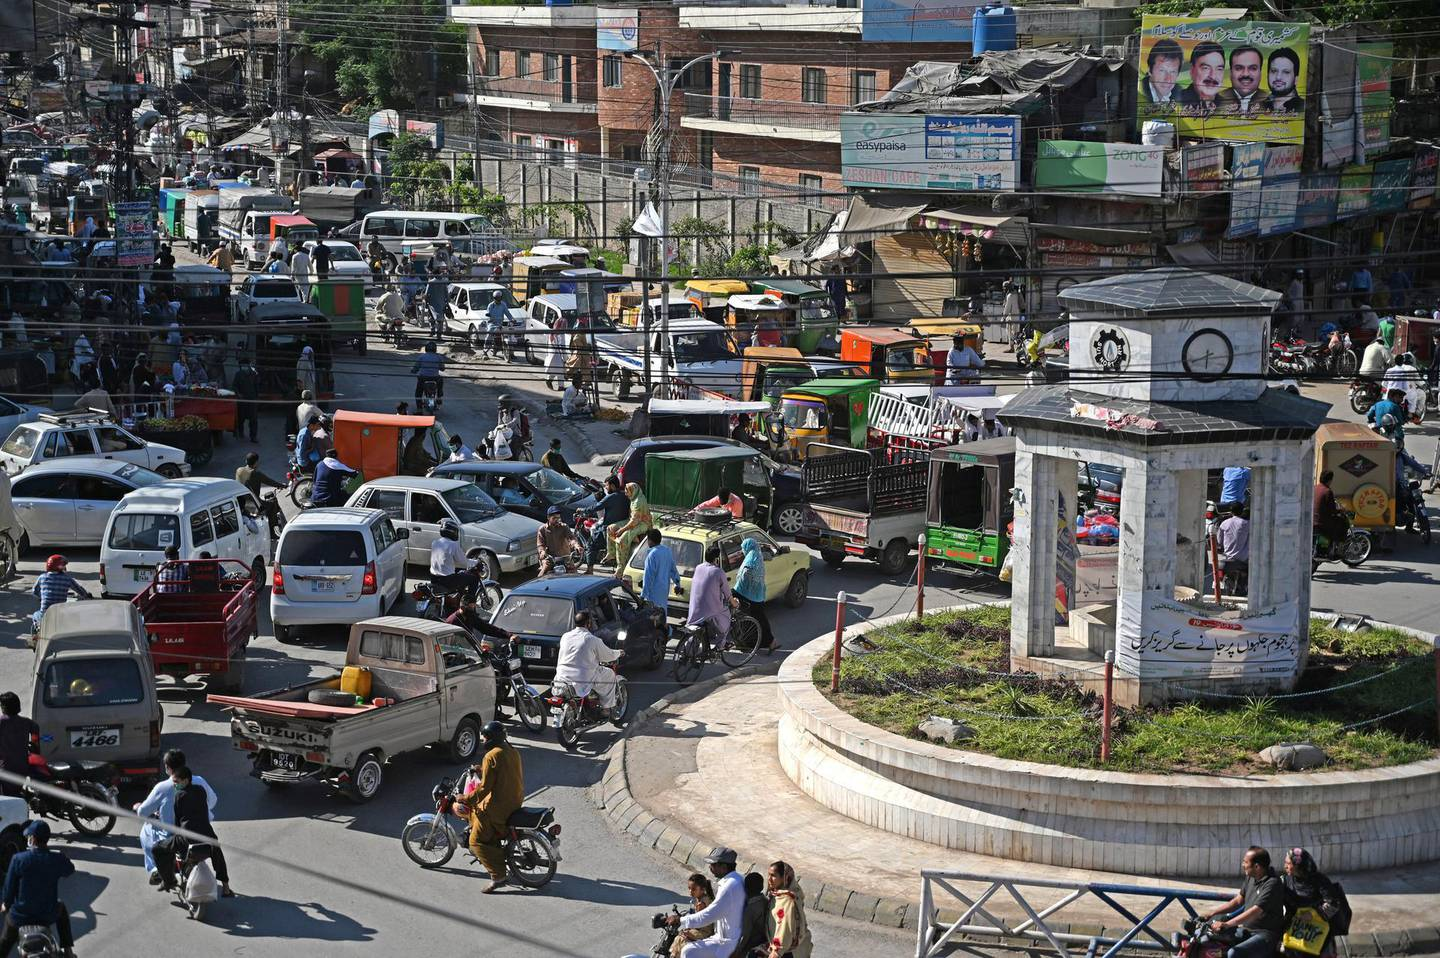 A general view of the crowded Raja Bazar is seen during a government-imposed nationwide lockdown as a preventive measure against the spread of the COVID-19 coronavirus, in Rawalpindi on May 5, 2020. (Photo by Aamir QURESHI / AFP)